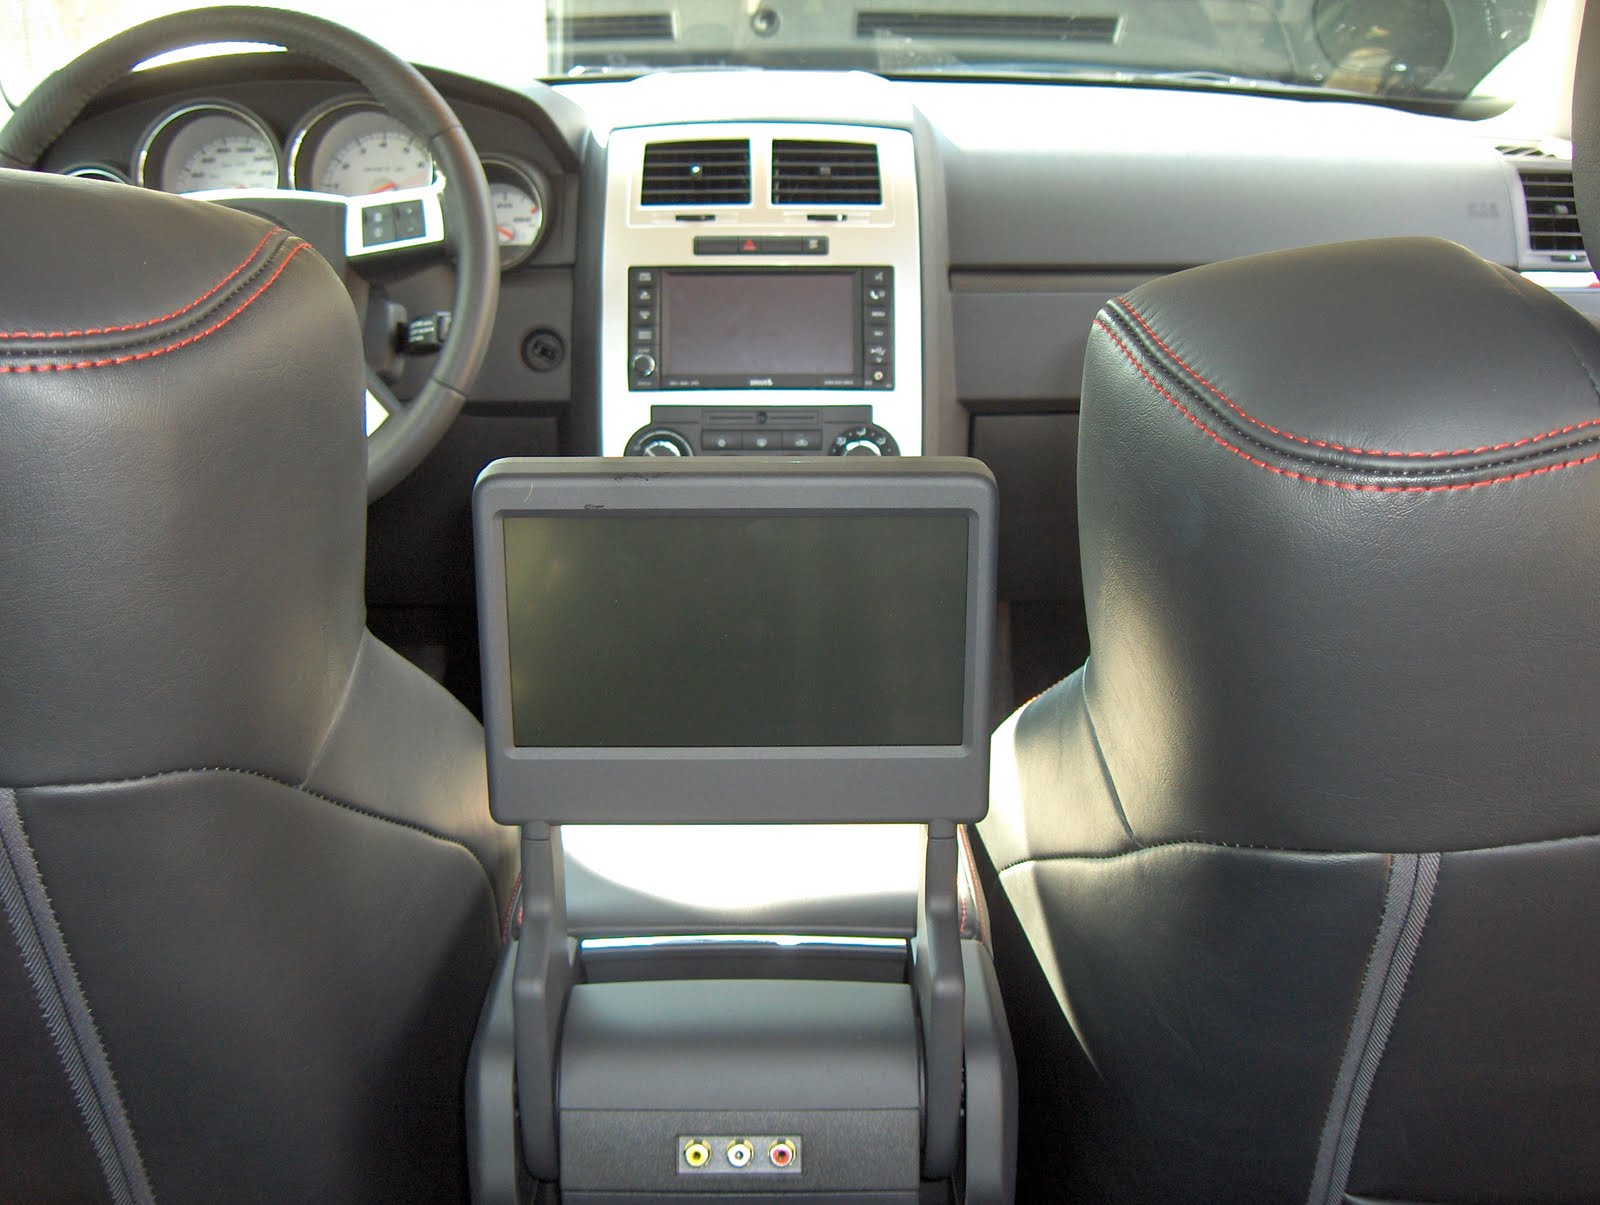 Interior Photo 4 Of The 2010 Dodge Charger Above